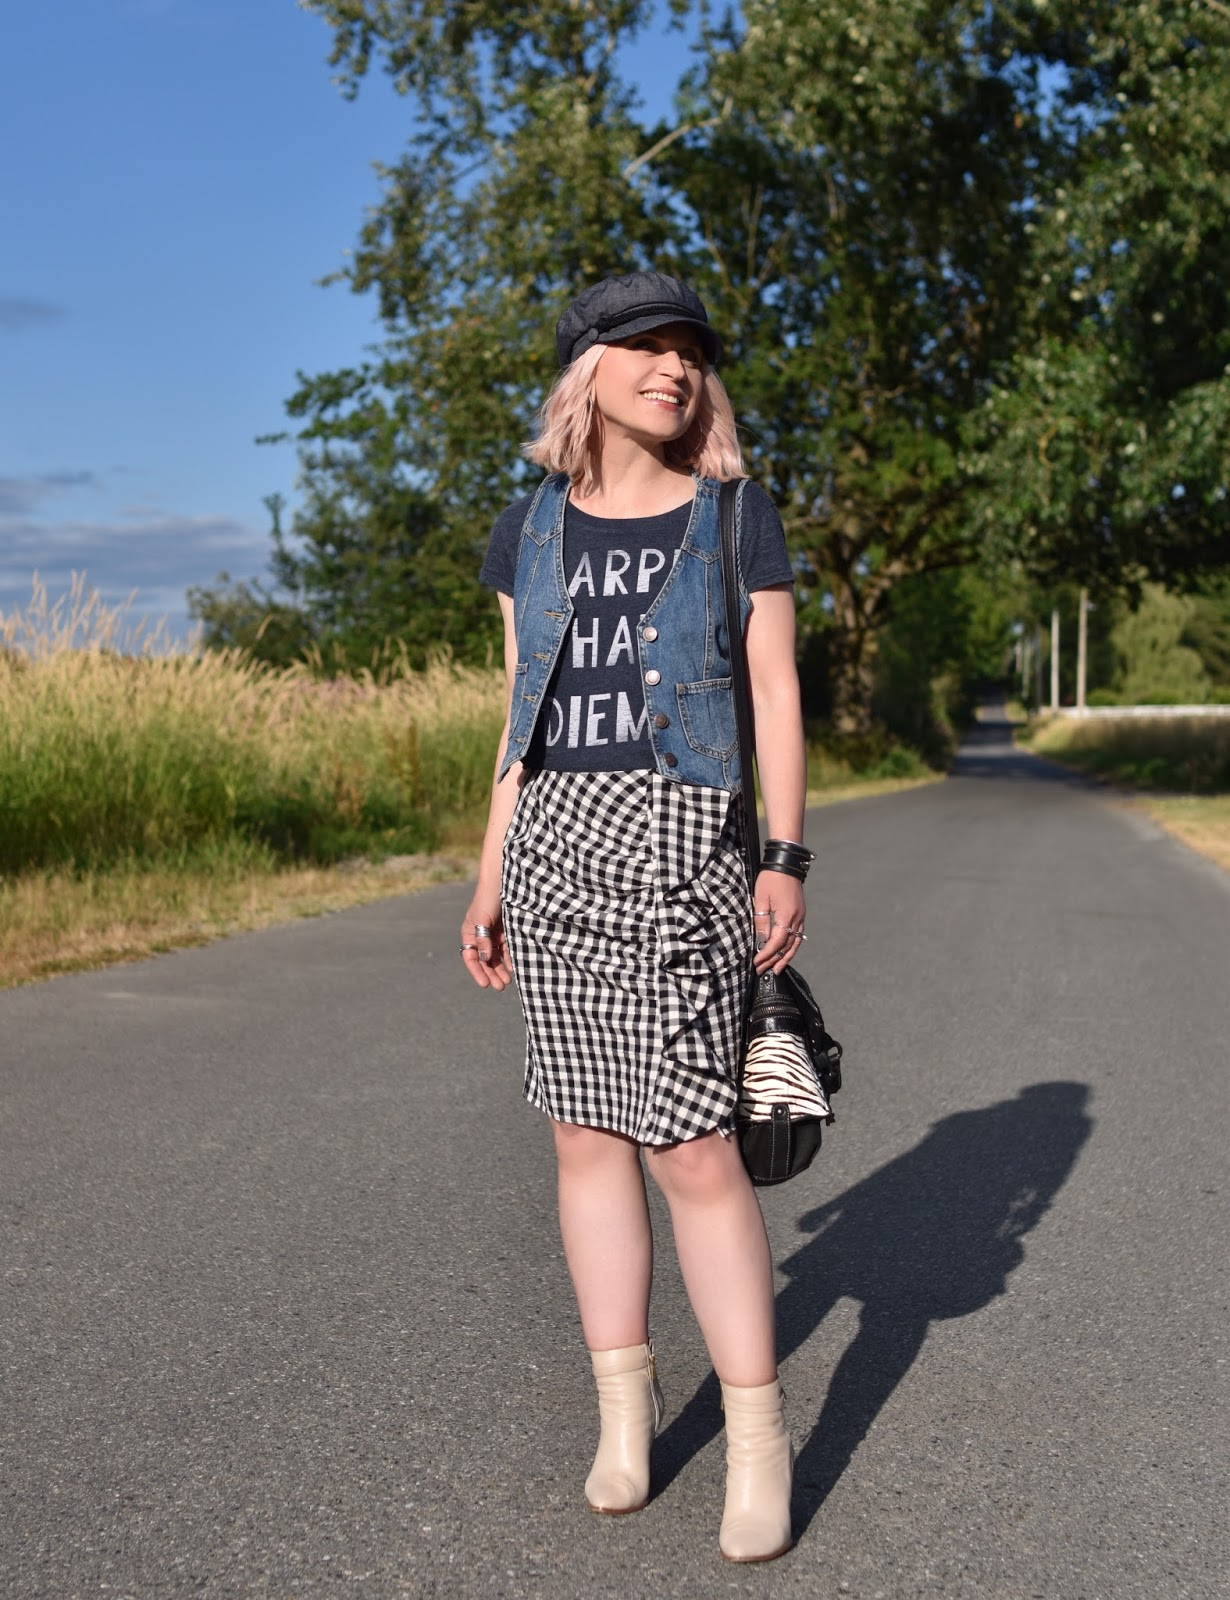 Monika Faulkner personal style inspiration - ruffled gingham skirt, graphic tee, denim vest, ivory booties, baker boy cap